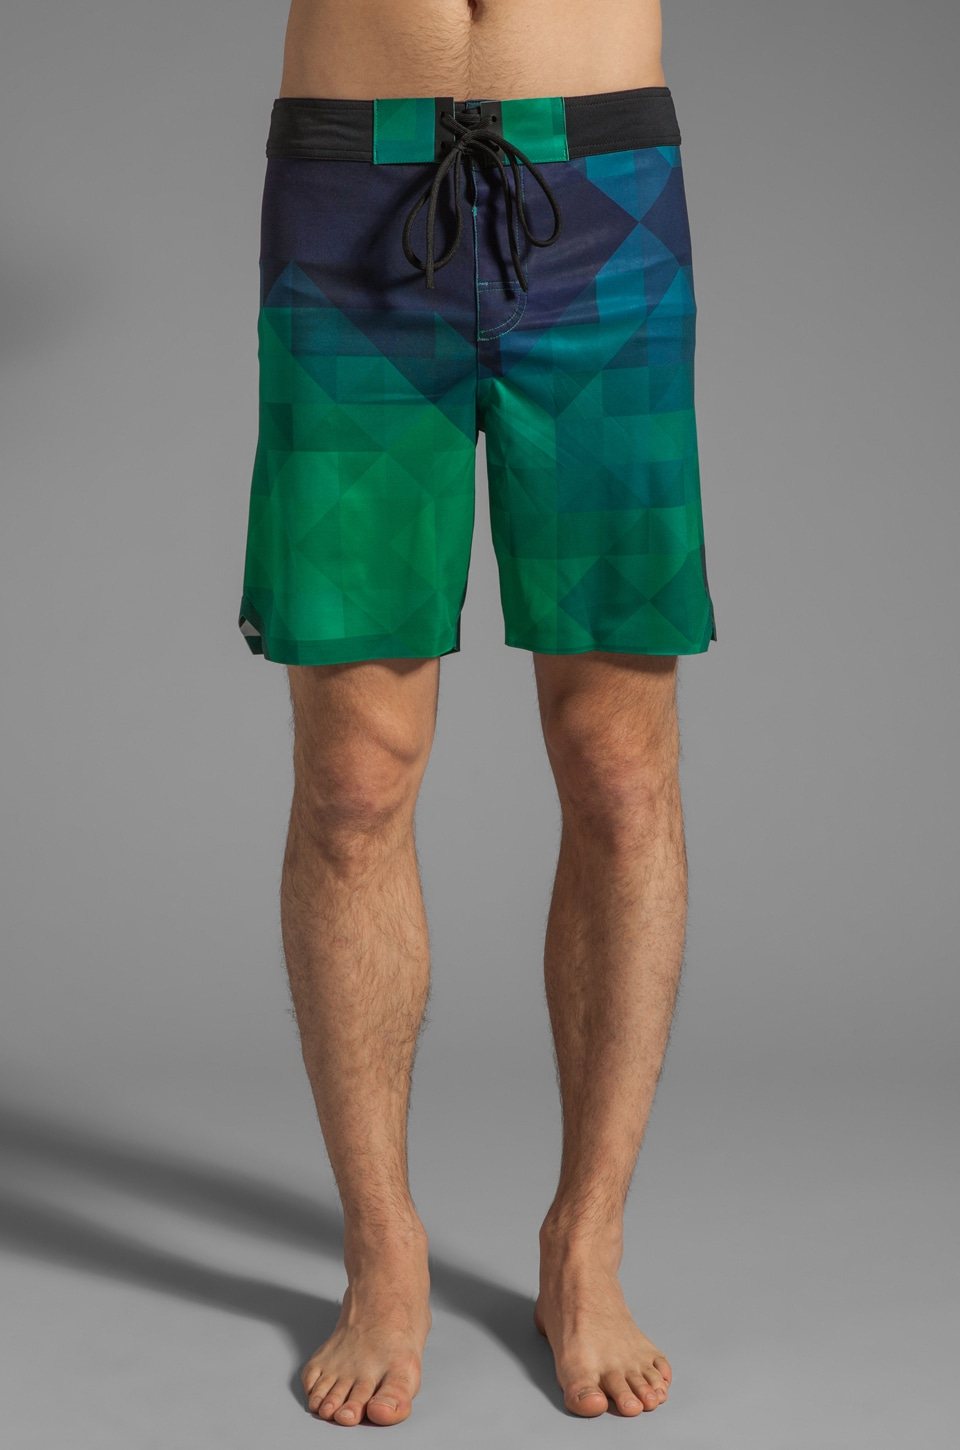 ISAORA Pixilated Printed Welded Stretch Board Short in Green